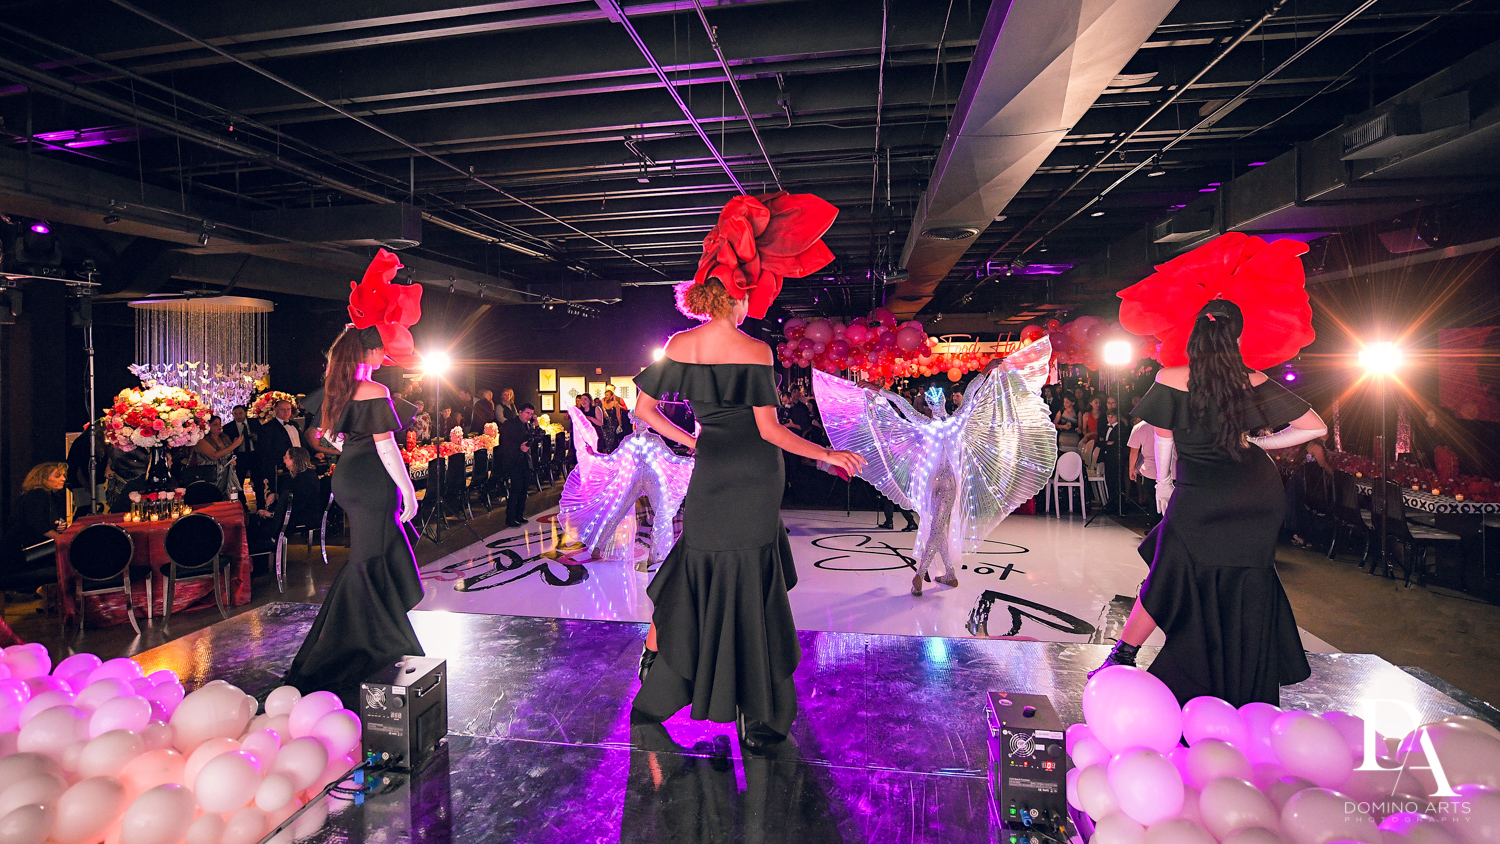 dancers at Fashion Theme Bat Mitzvah at Gallery of Amazing Things by Domino Arts Photography